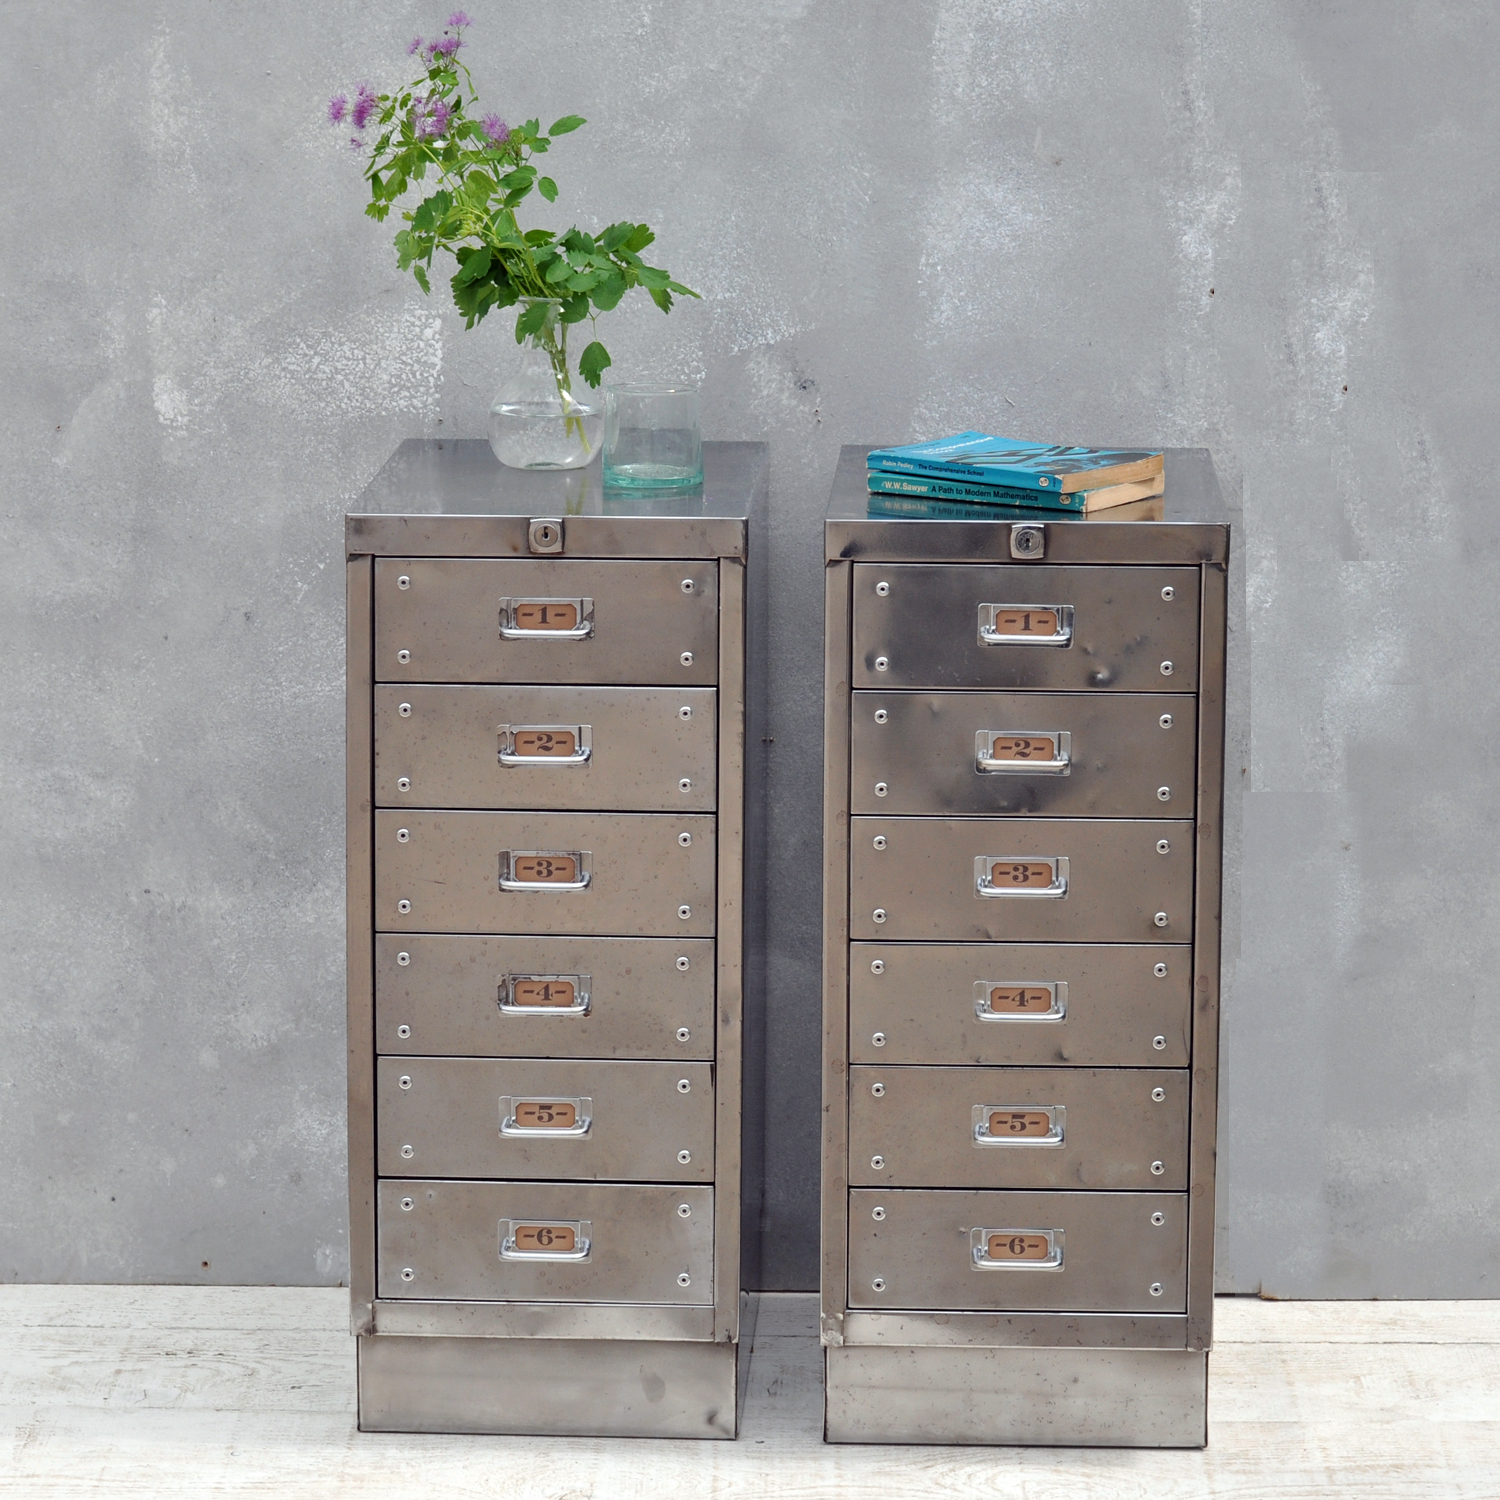 Wonderful  Metal File Cabinets Cabinets Pulls Modern Cabinets Cabinets